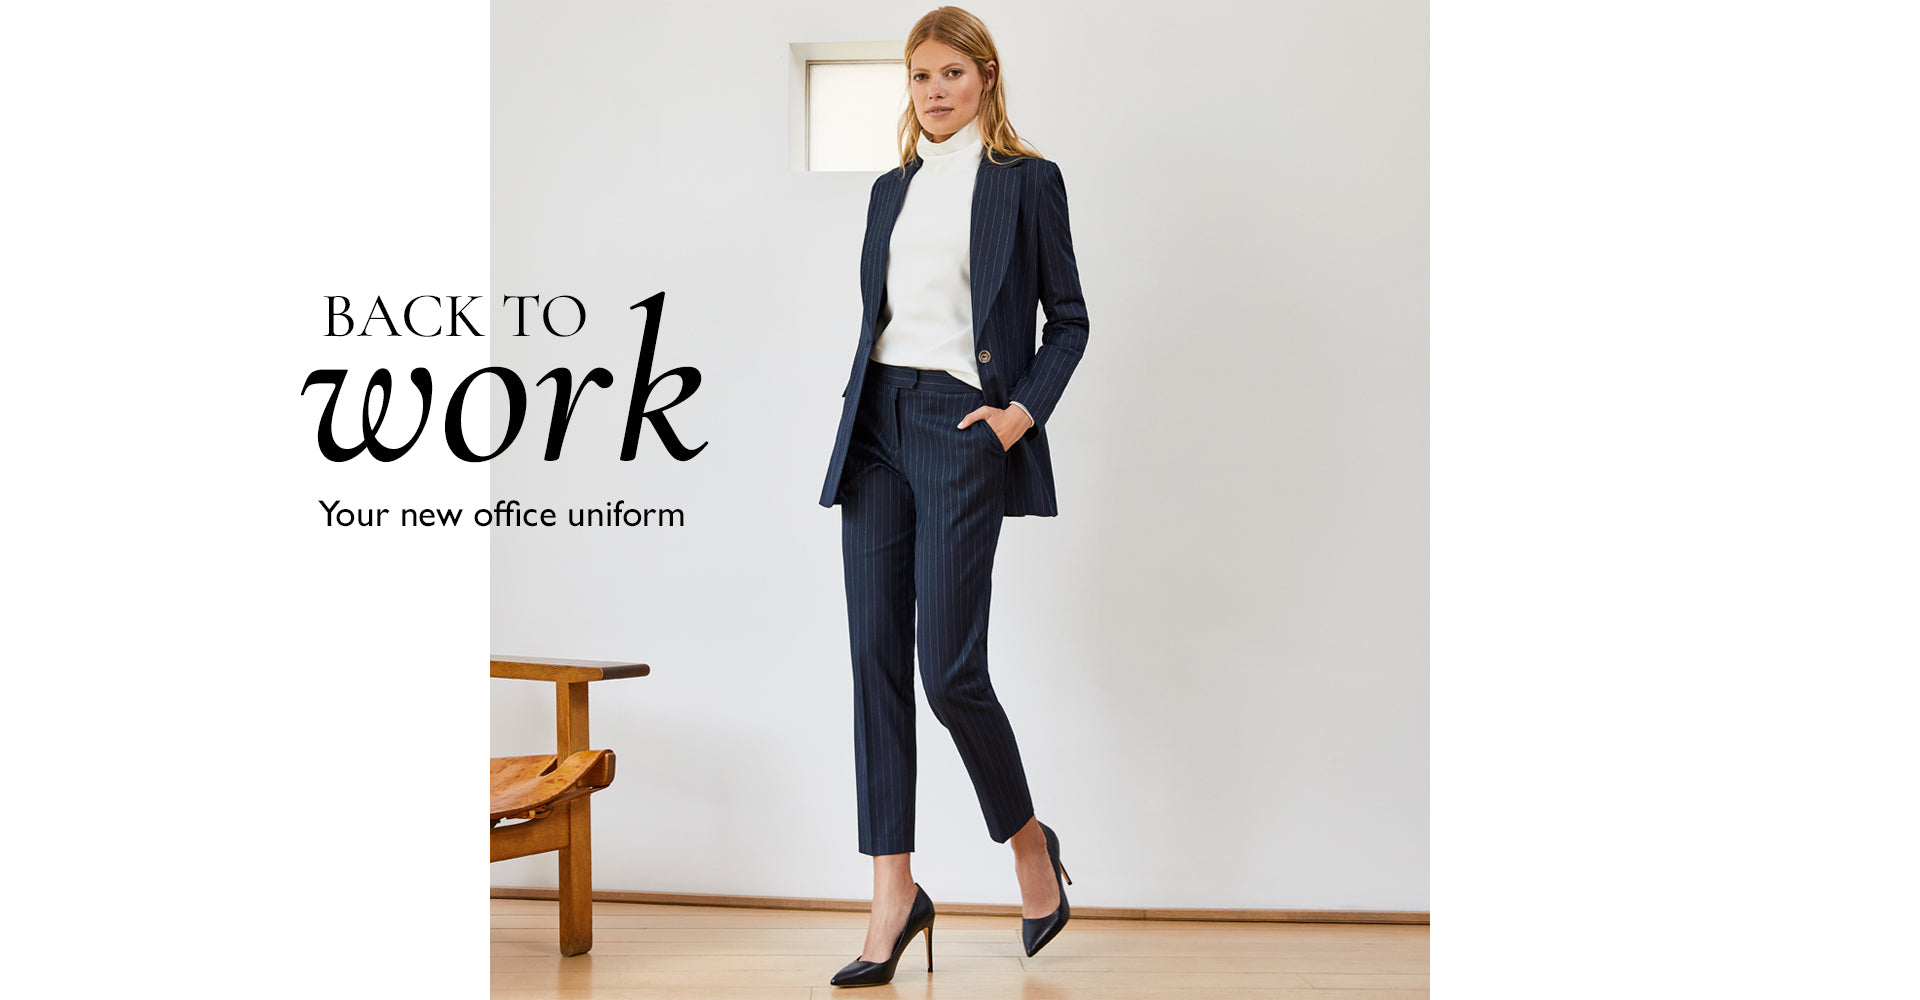 Back to work Your new office uniform